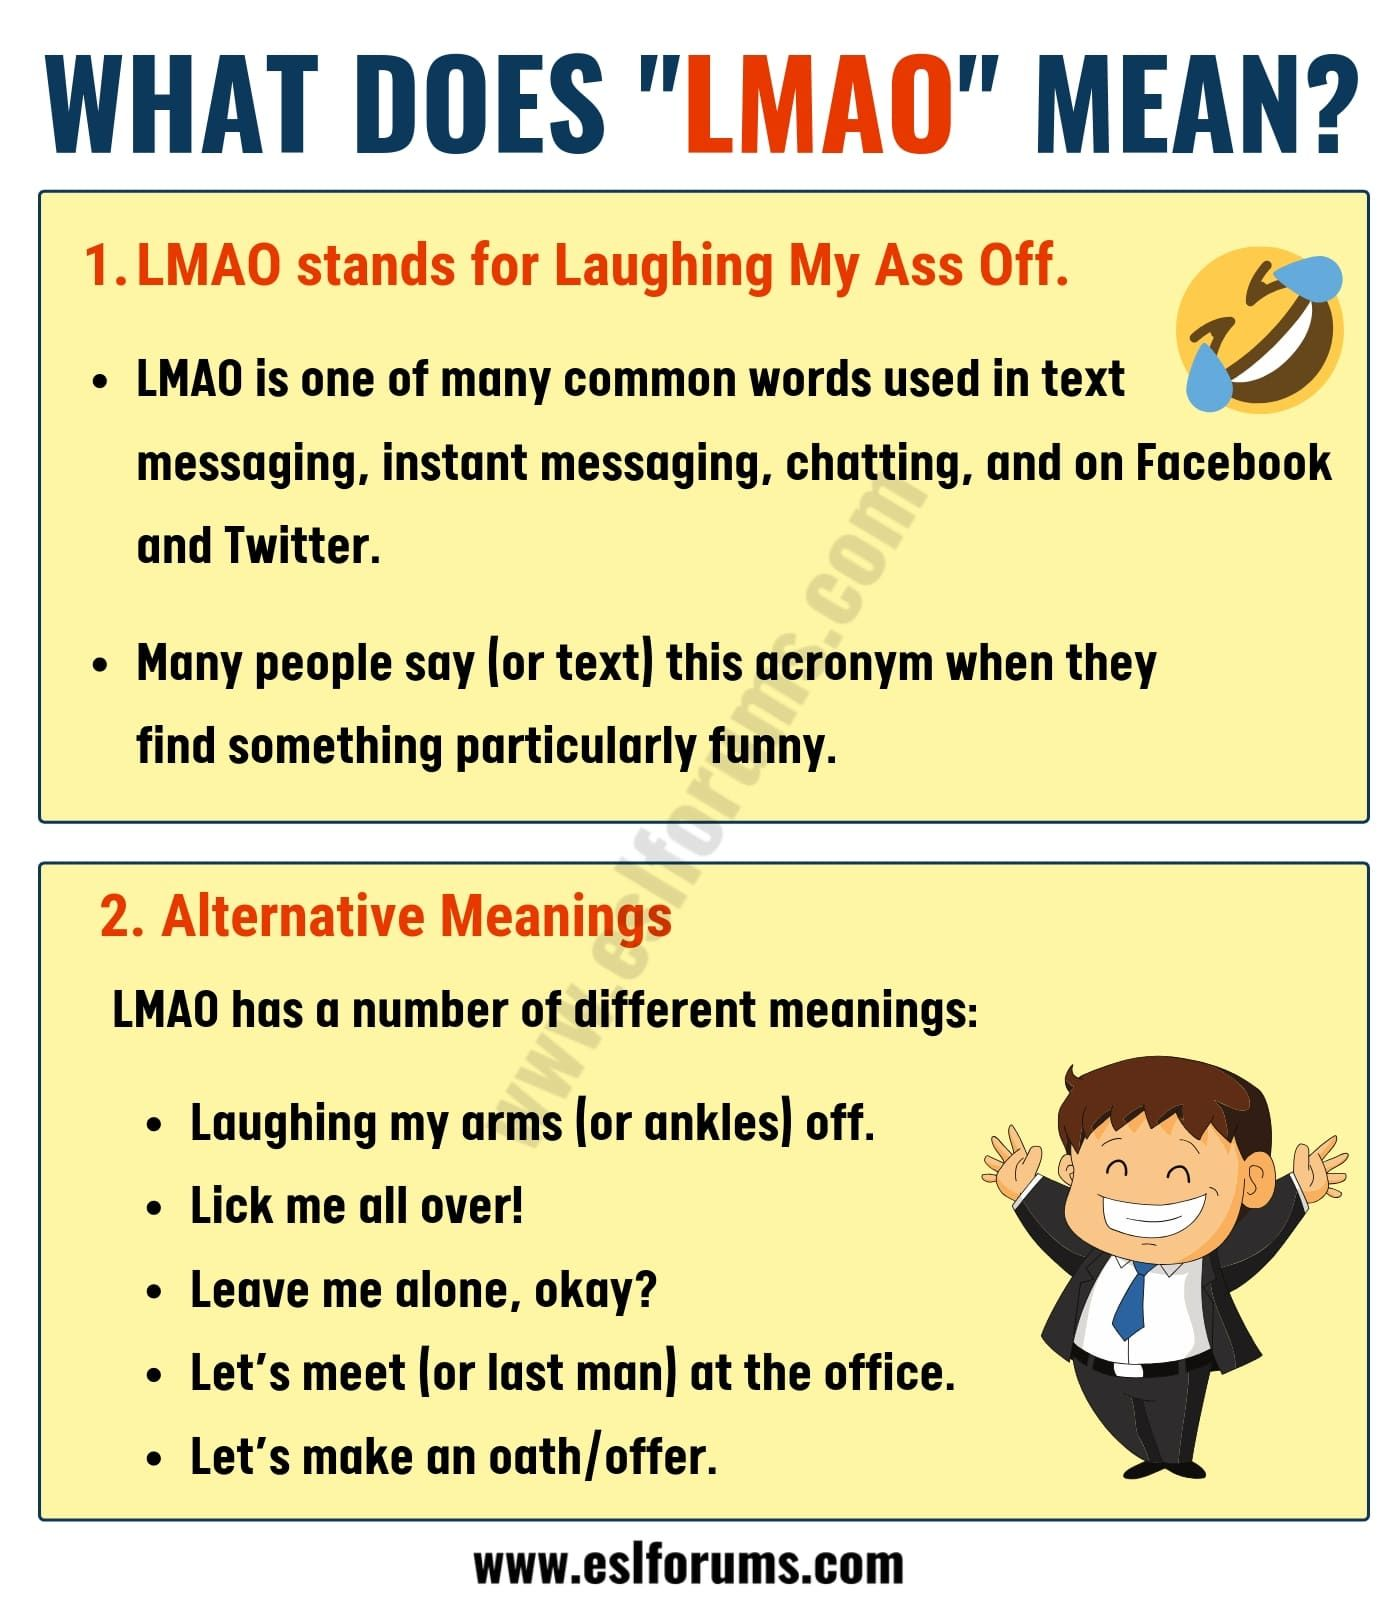 What Does LMAO Mean in Texting? ROFL, BFF, IMO & More